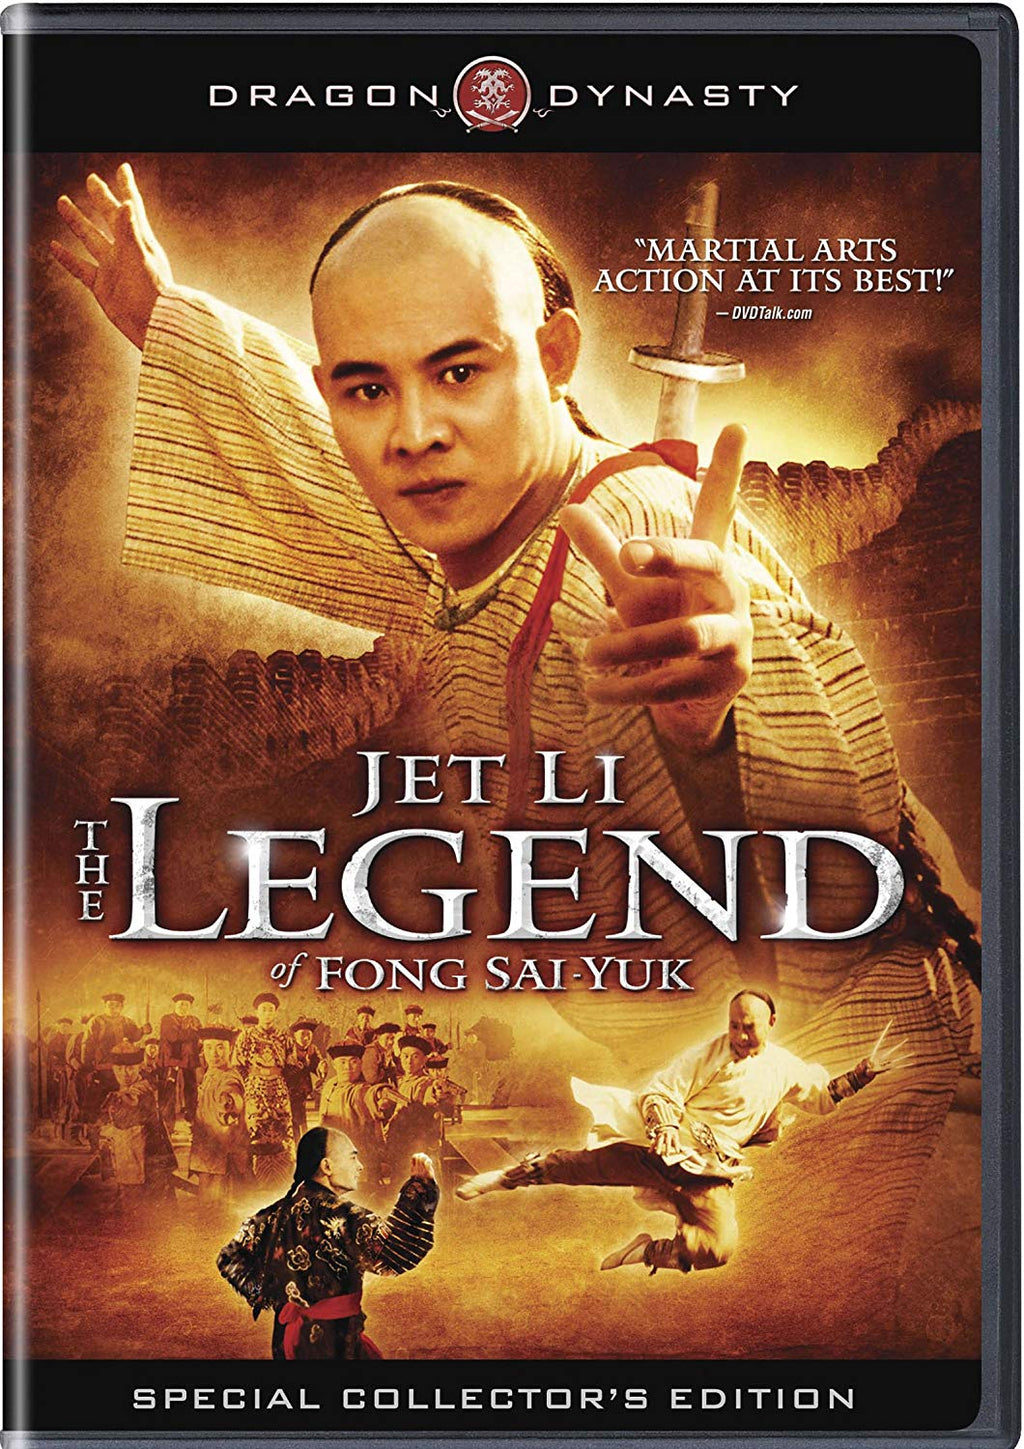 Jet Li's The Legend - Special Collector's Edition DVD